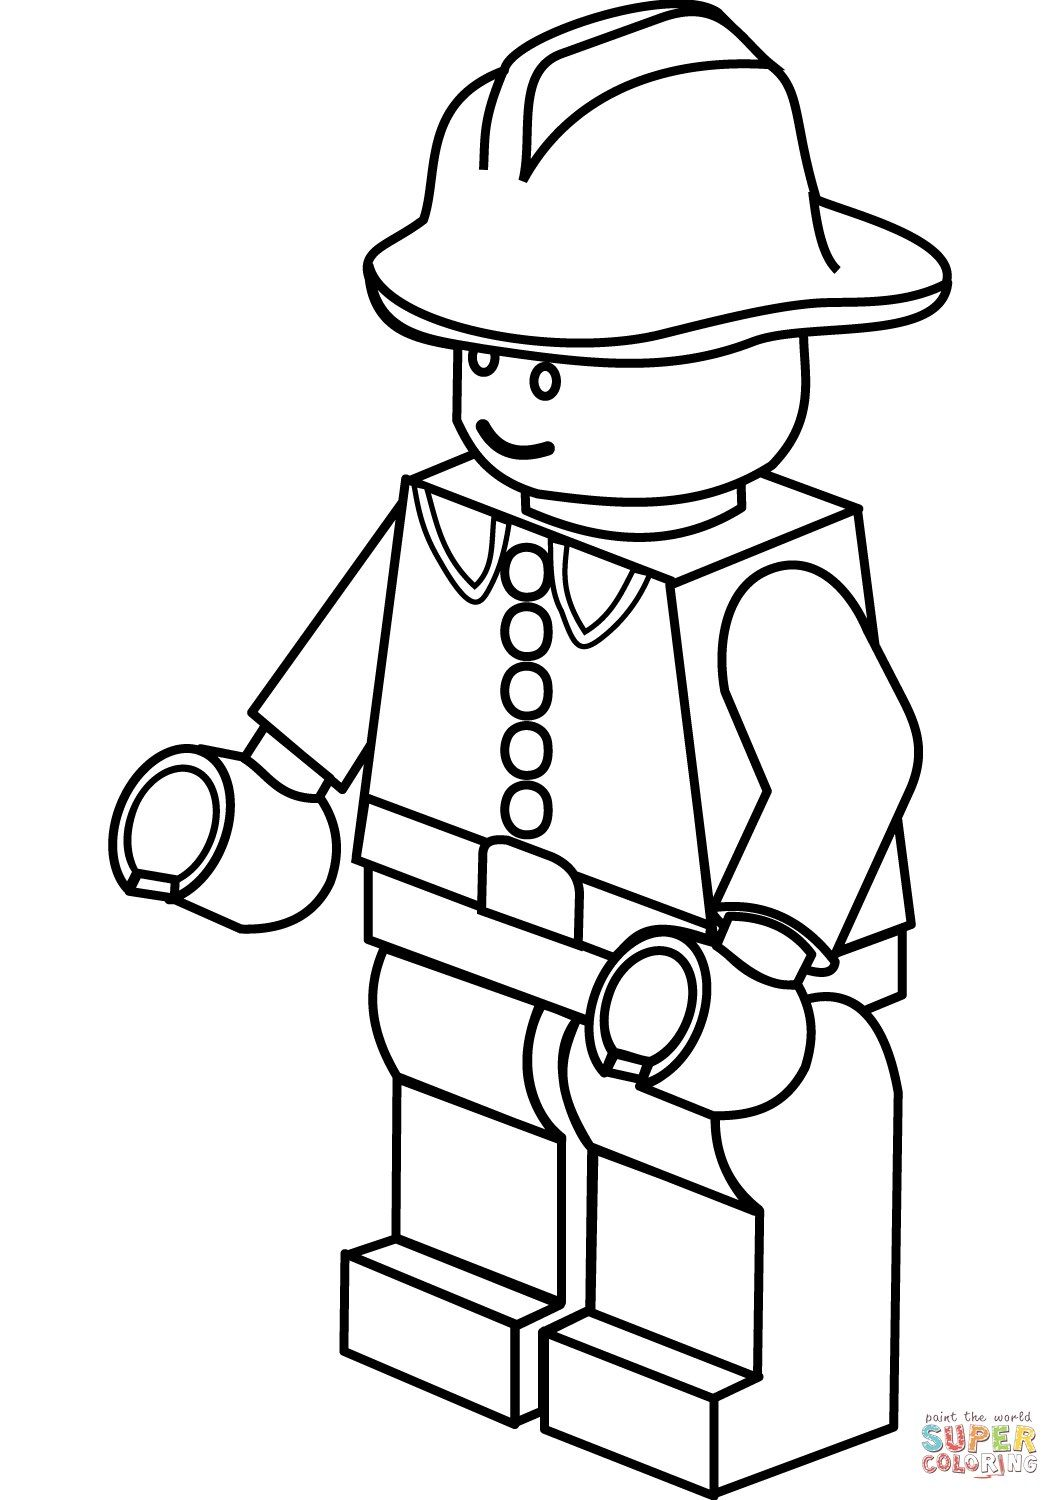 25 Amazing Image Of Fireman Coloring Pages Lego Coloring Pages